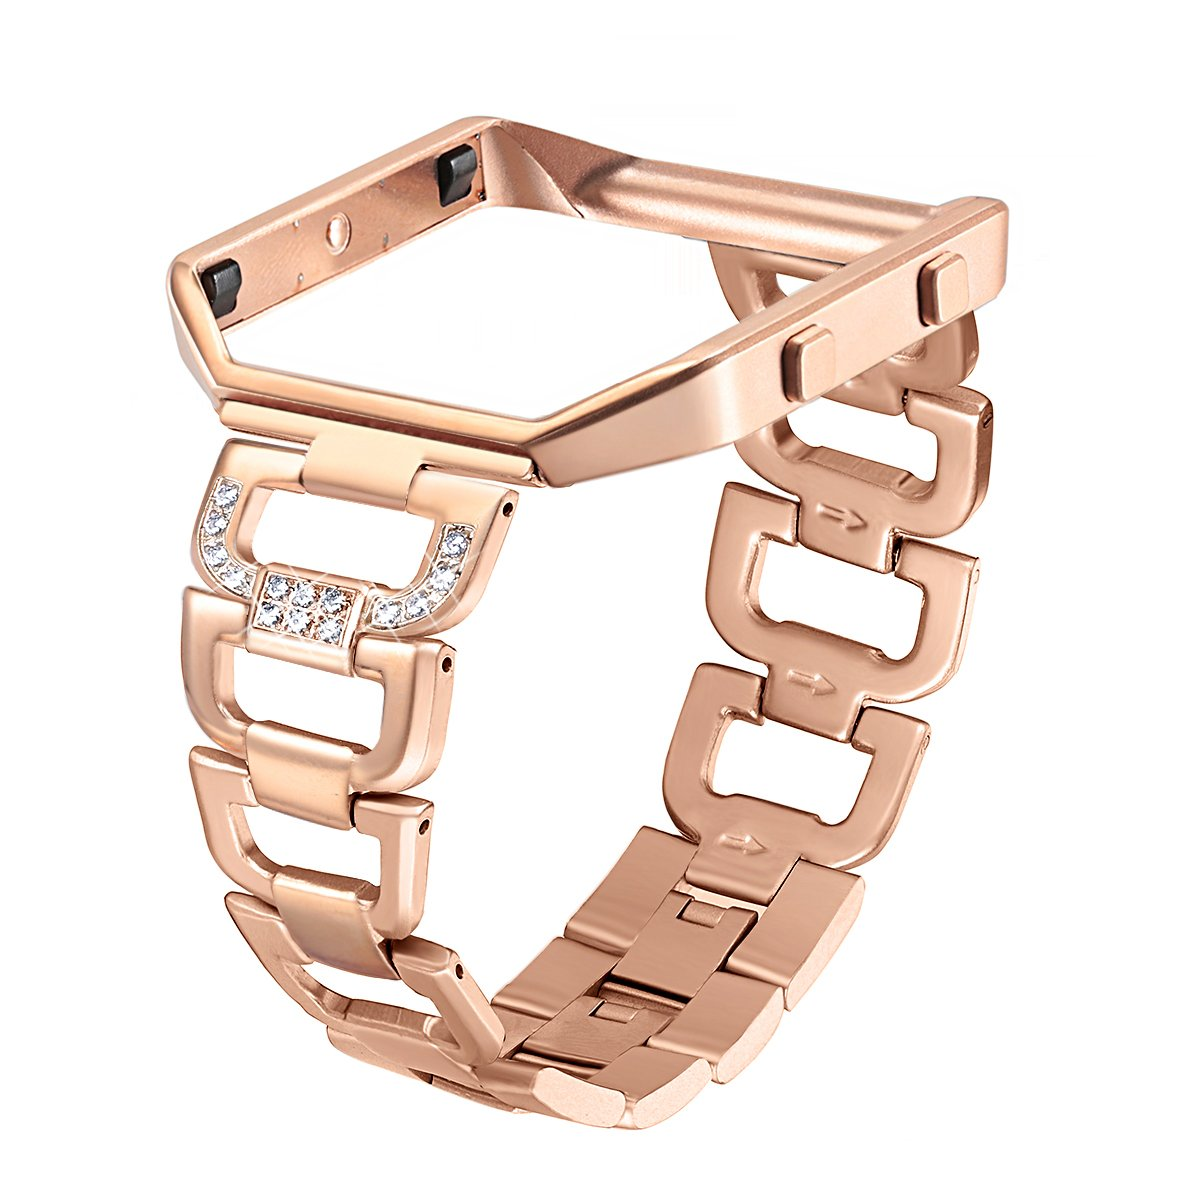 bayite Stainless Steel Bands with Frame Compatible Fitbit Blaze, Rhinestone Bling Replacement Accessory Straps Women, Rose Gold